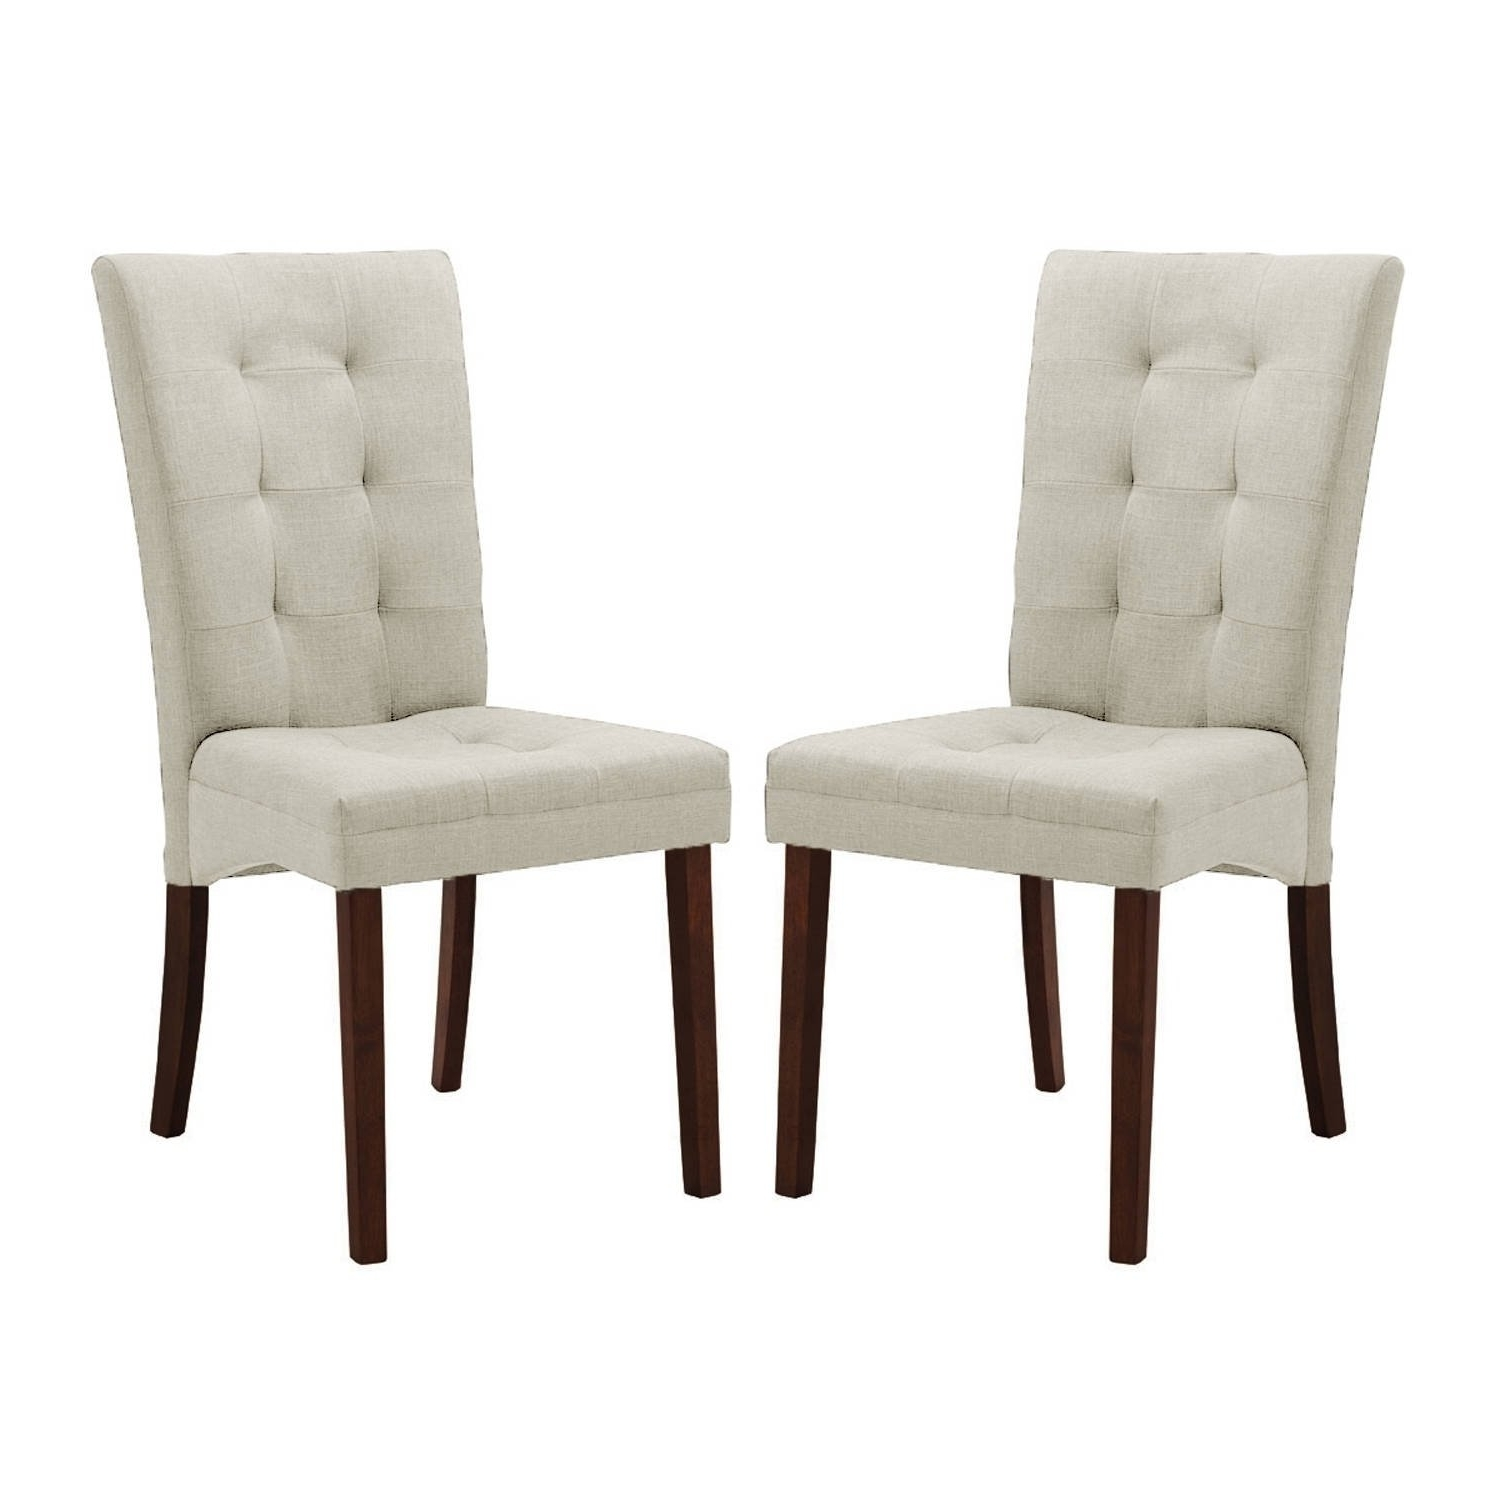 Newest Fabric Covered Dining Chairs In Shop Contemporary Beige Fabric Dining Chair 2 Piece Setbaxton (Gallery 3 of 25)